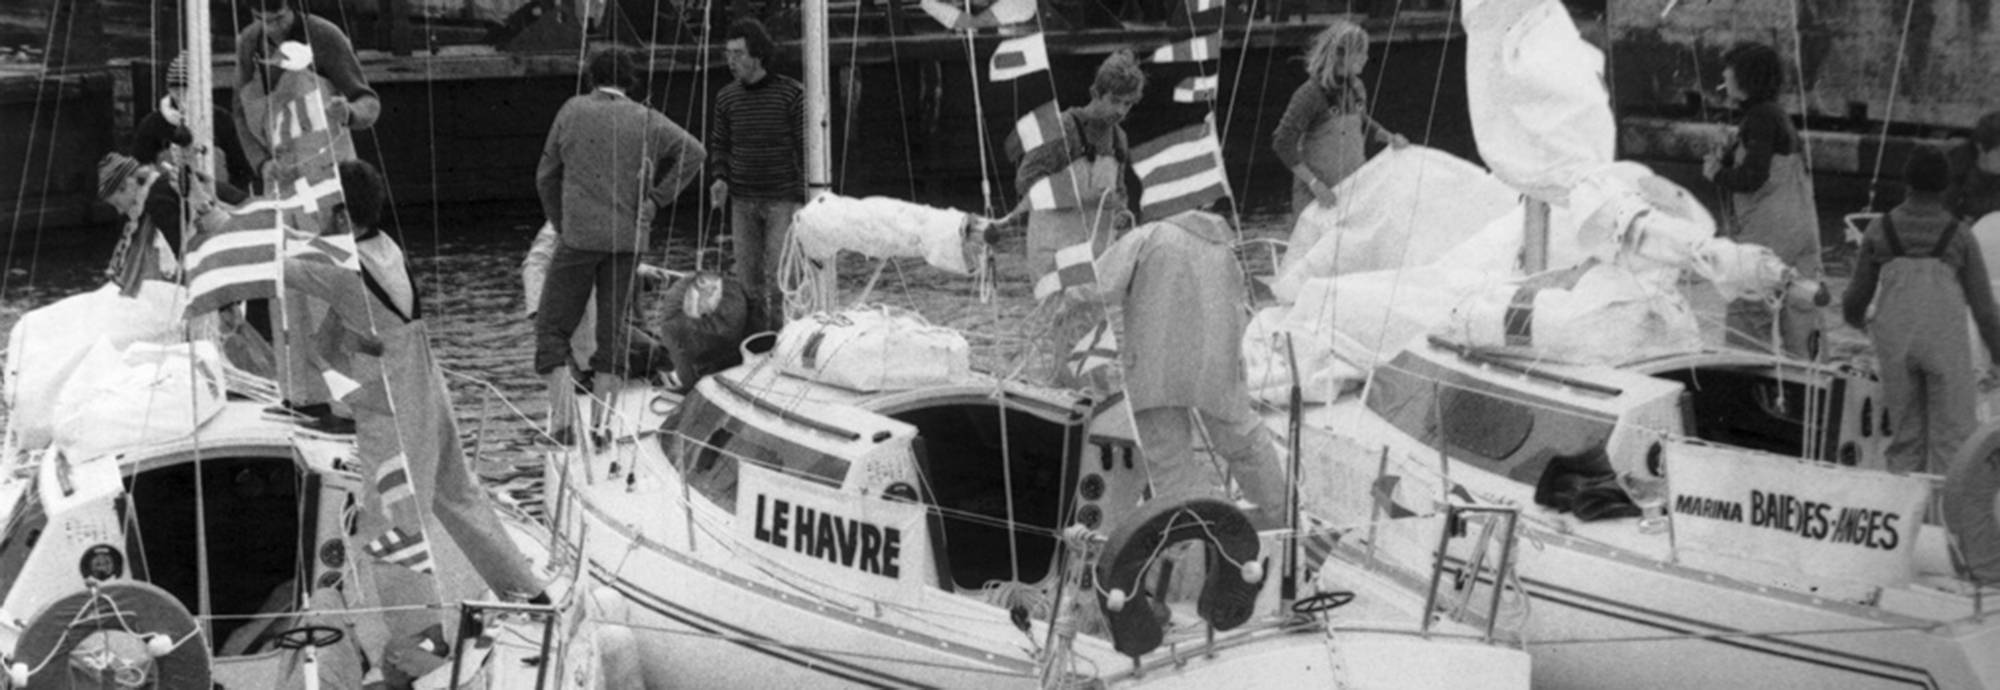 Header: 1978 - The Ecume des mers